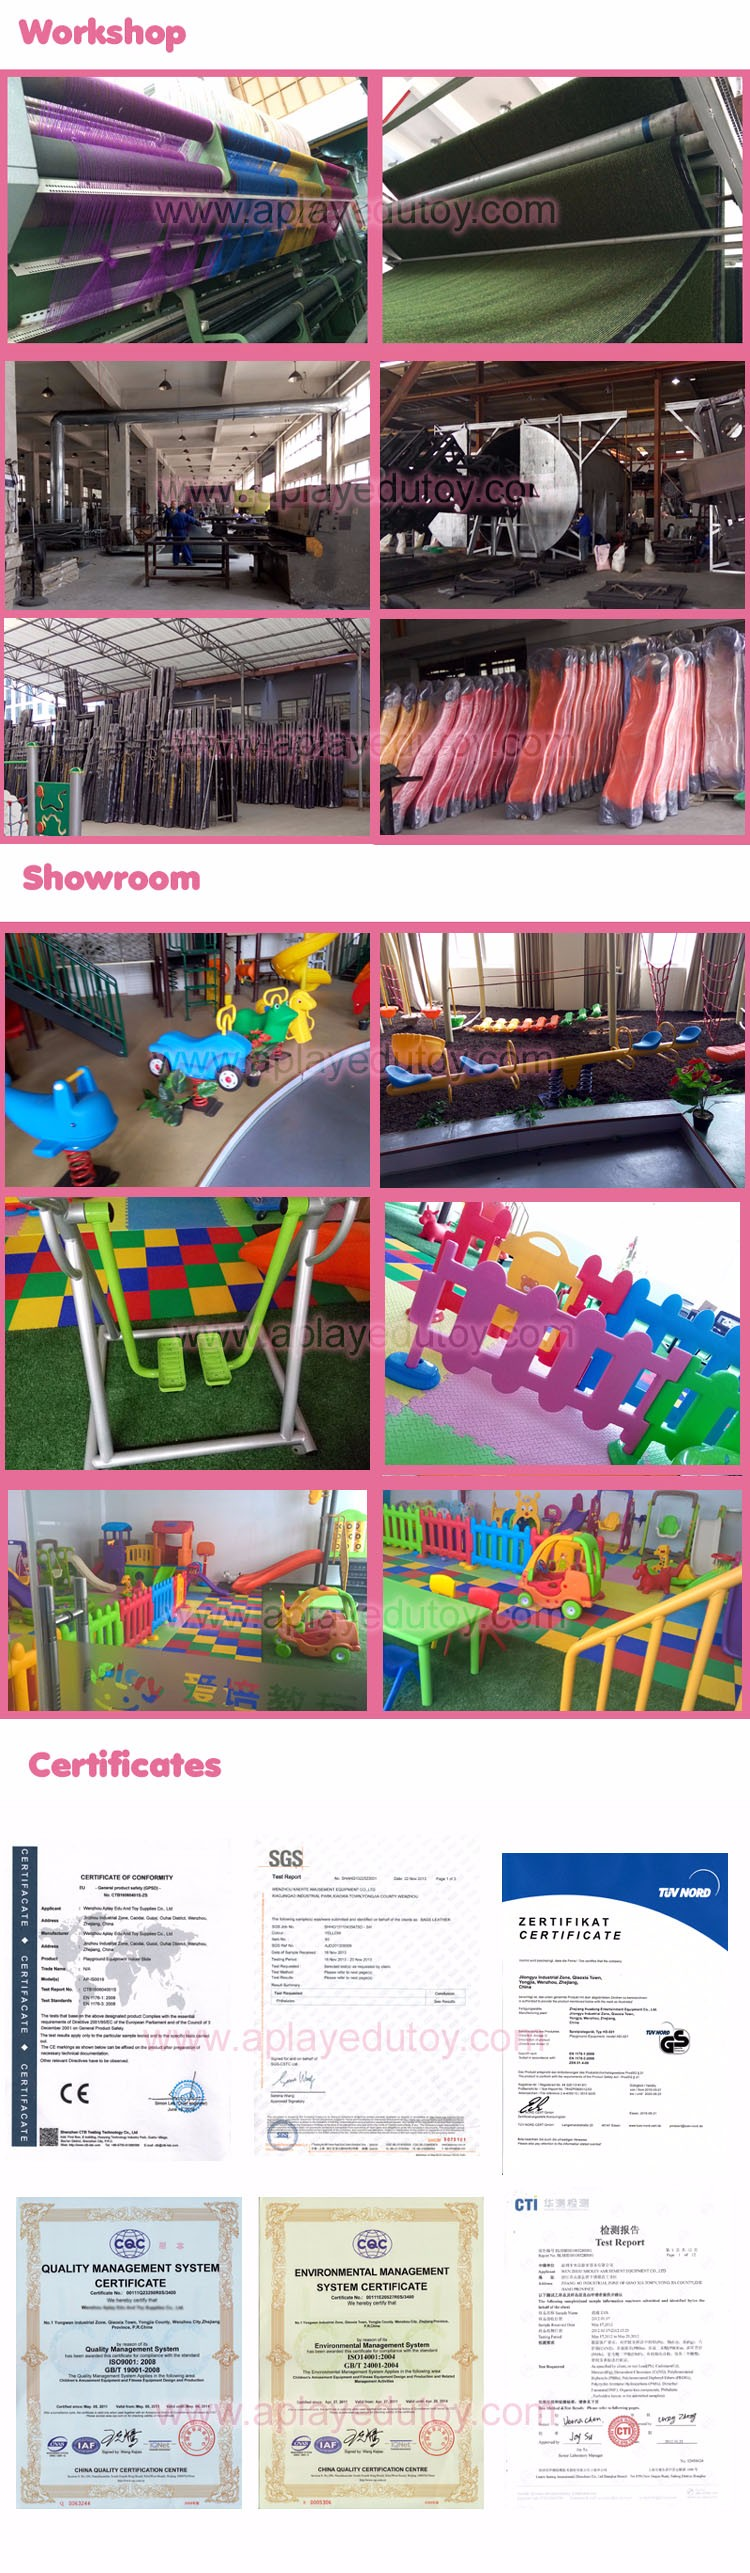 Bakery games cubby girls play toys indoor childrens plastic playhouse.jpg